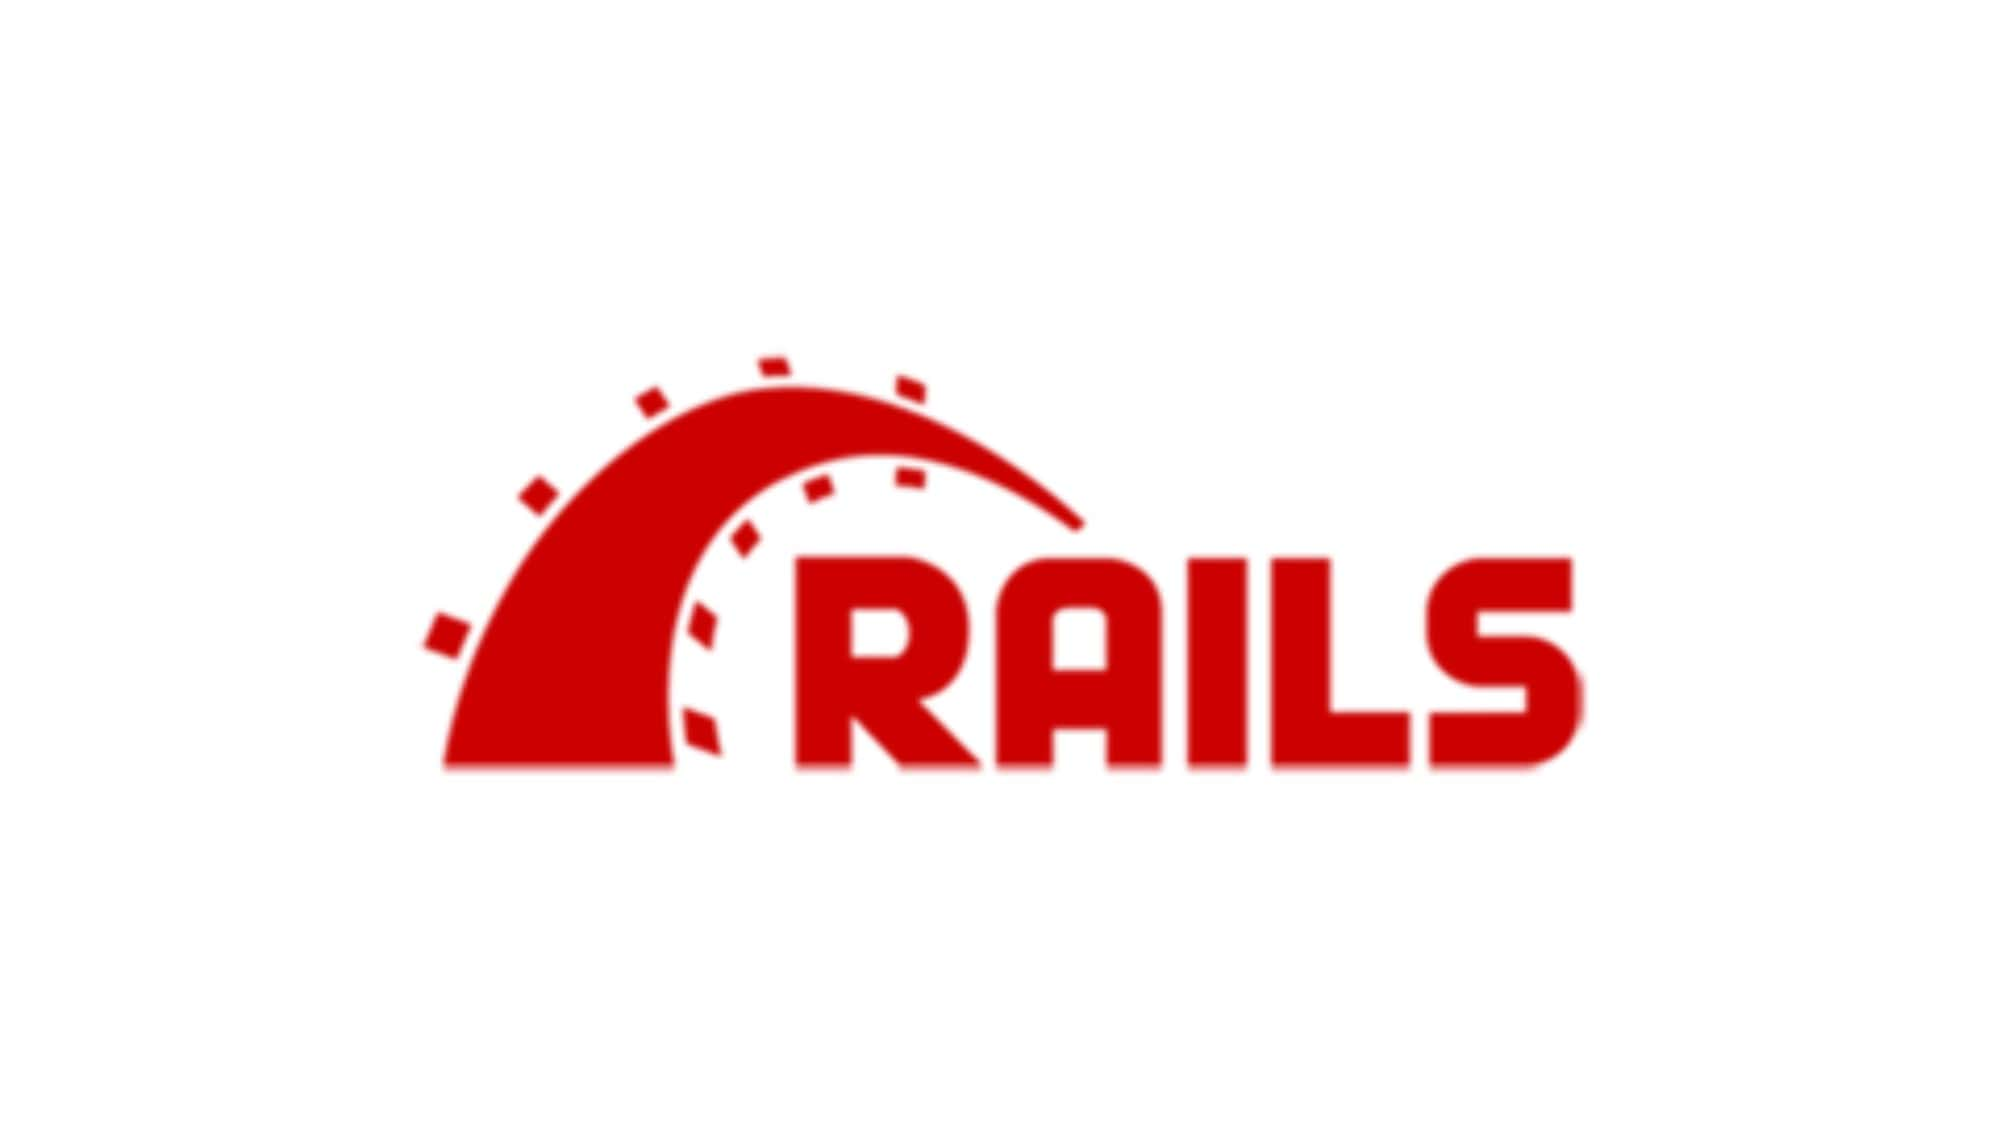 Come Installare Ruby On Rails Con Rbenv Su Ubuntu 18 04